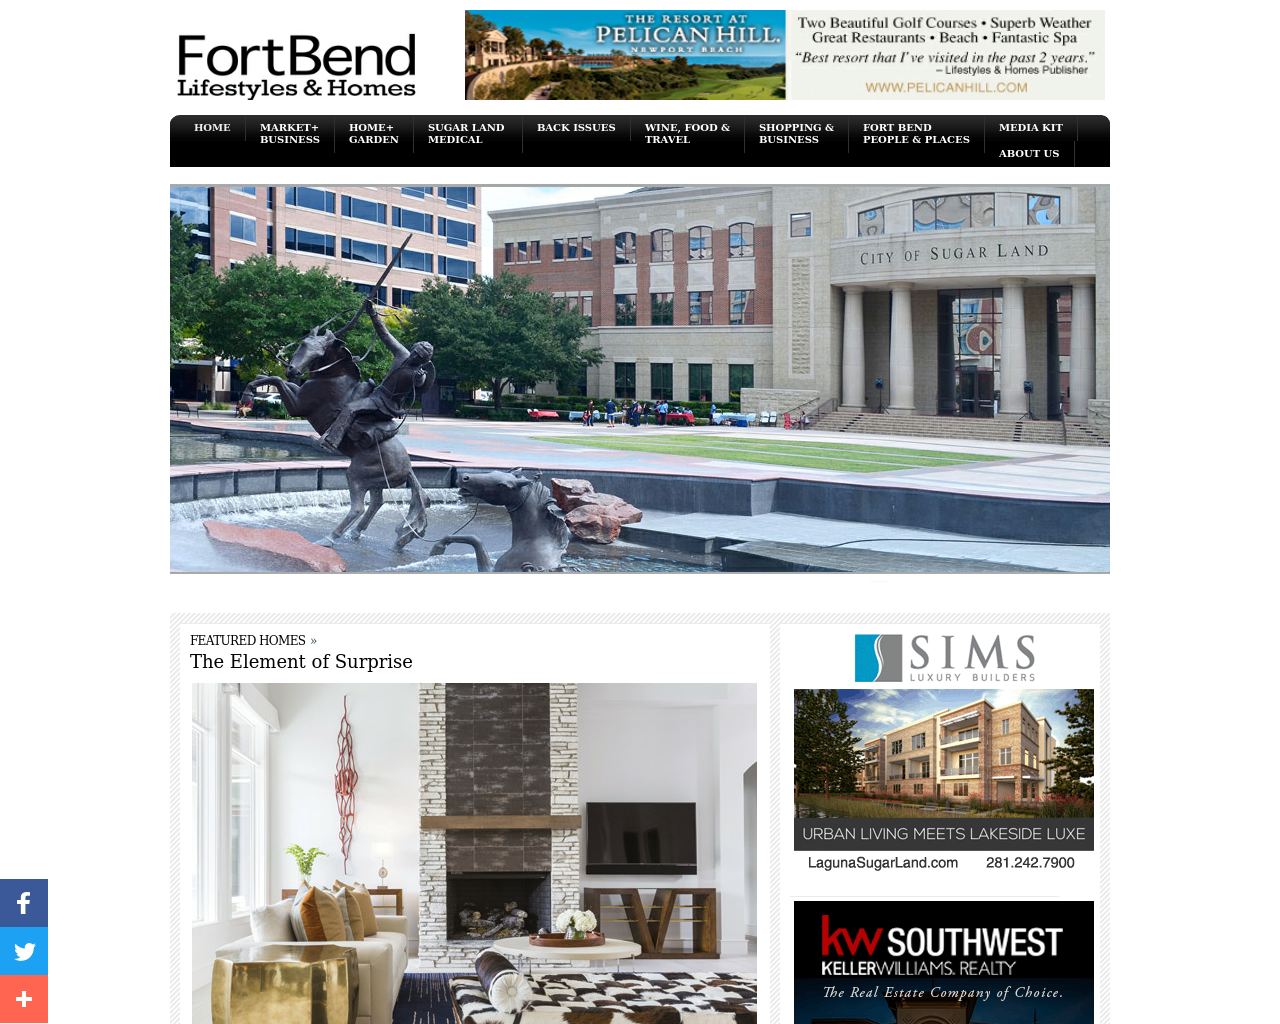 Fort-Bend-Lifestyles-&-Homes-Advertising-Reviews-Pricing